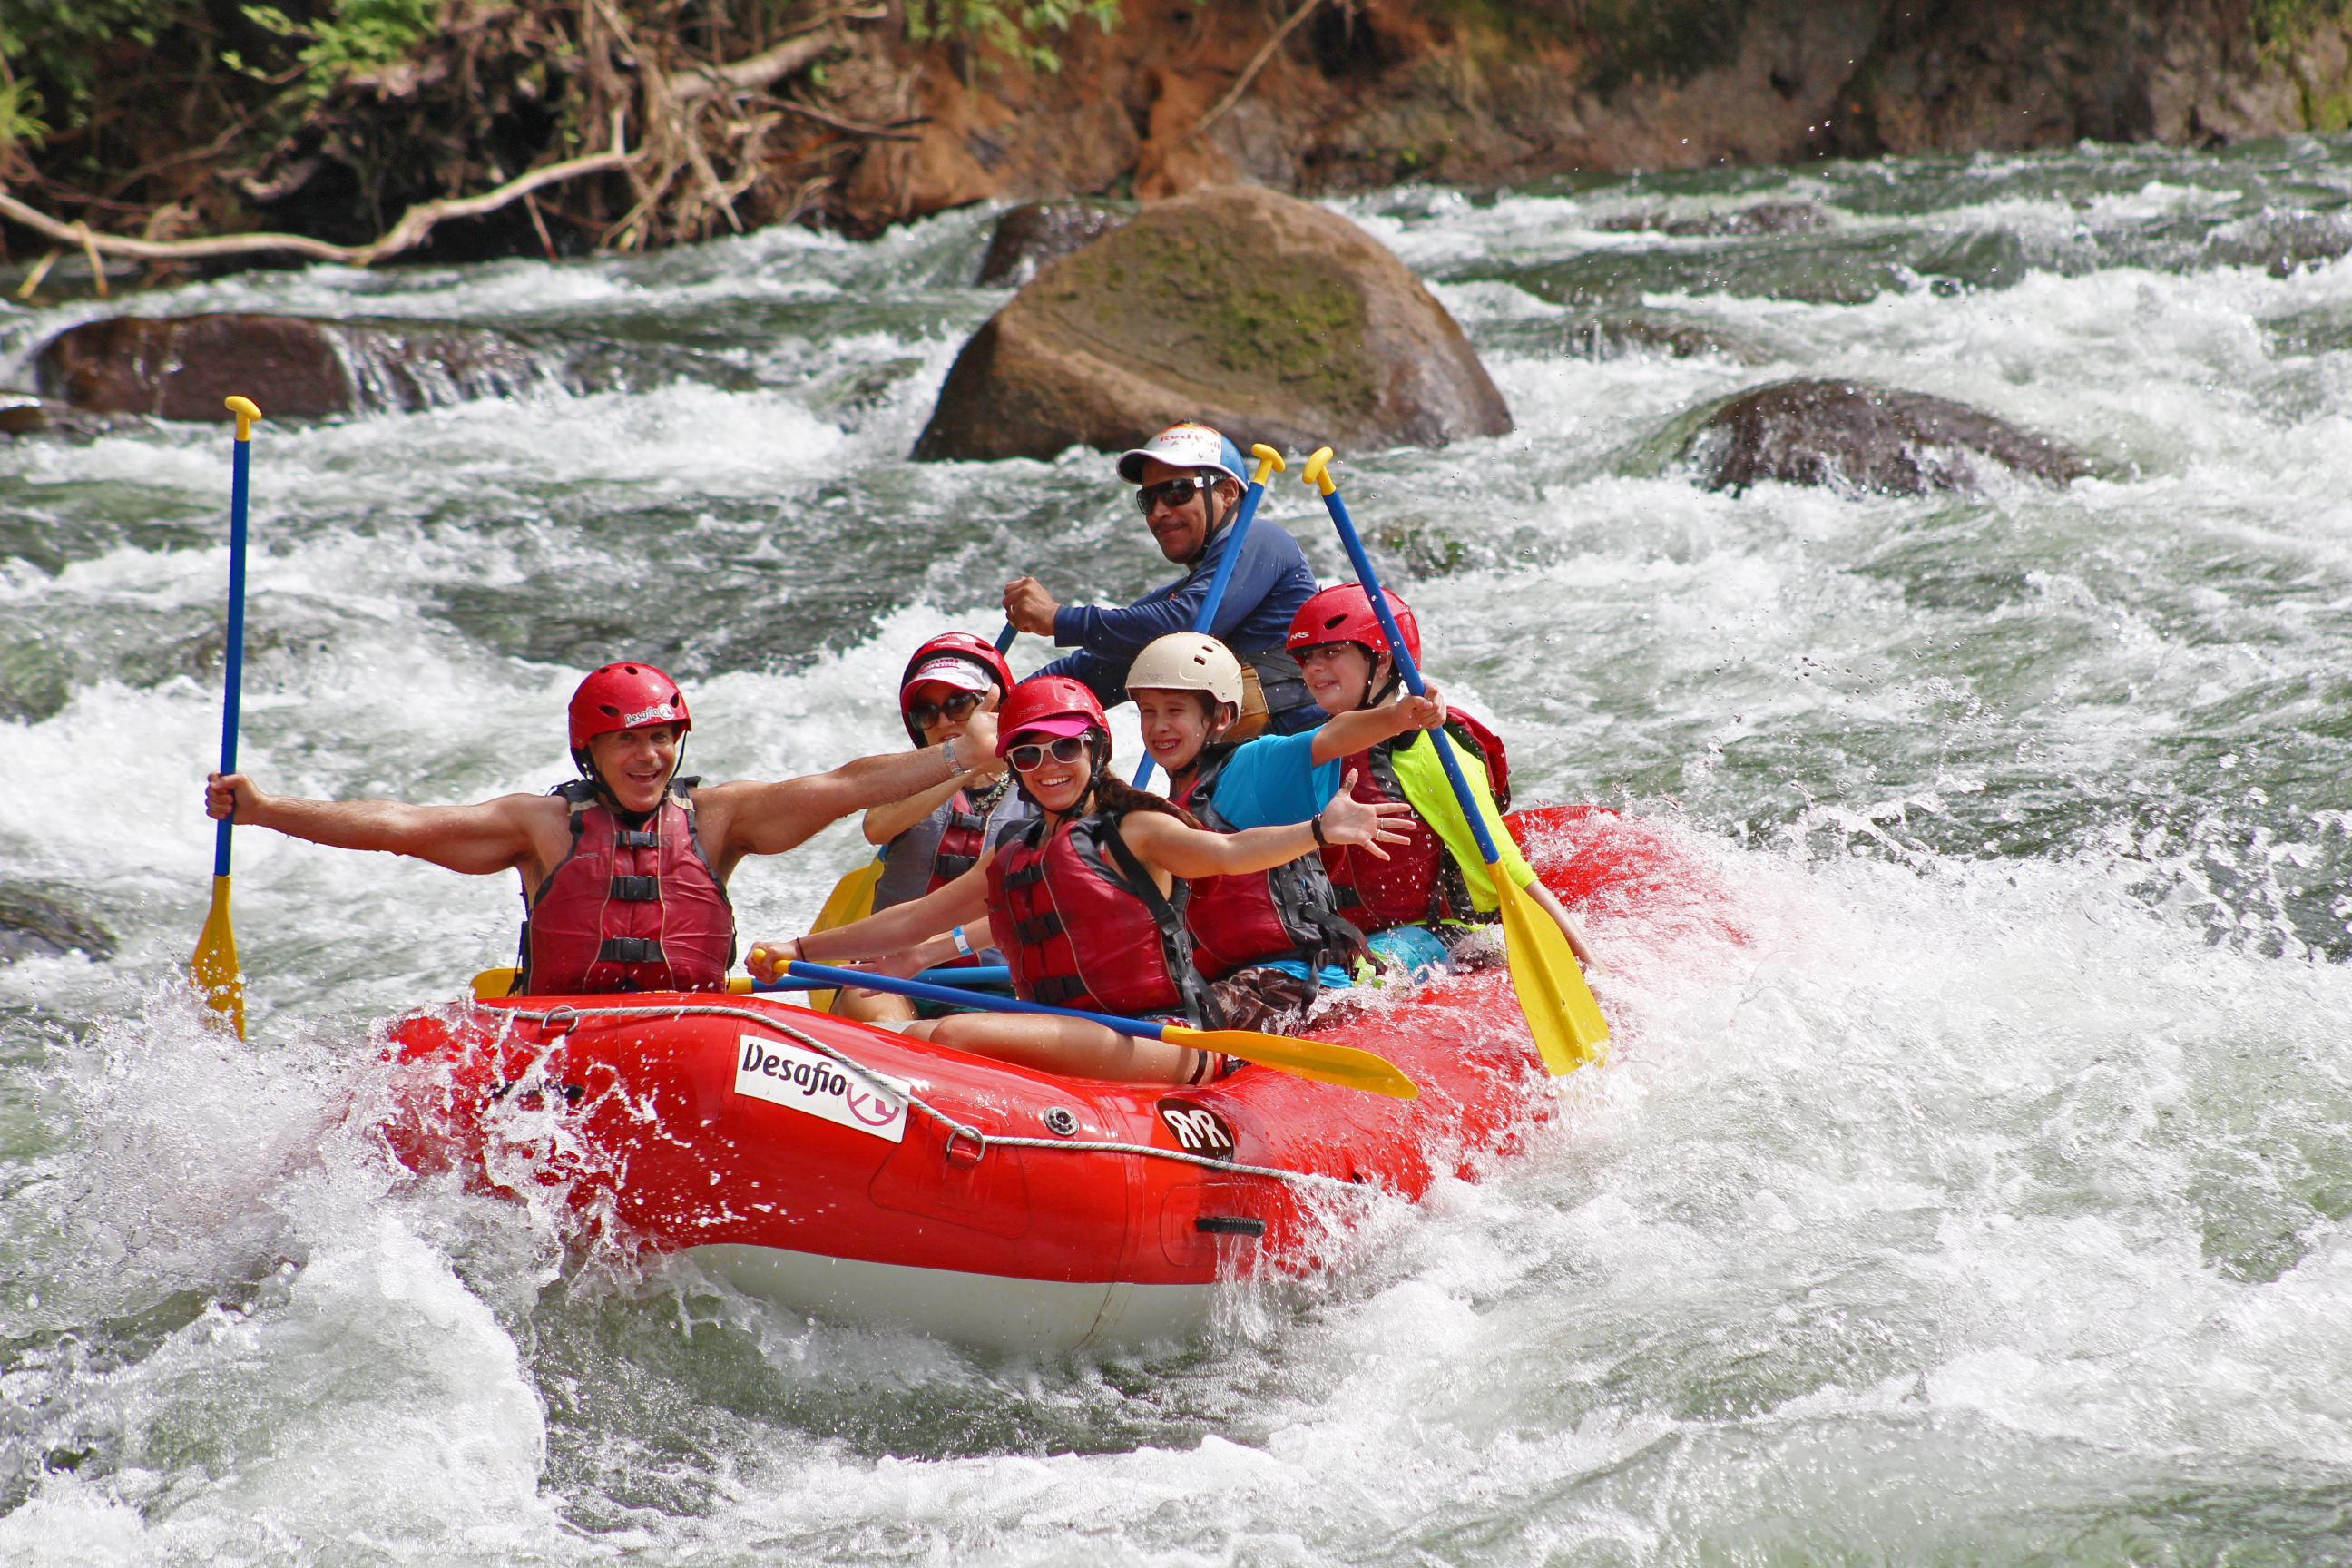 Rio Balsa white water rafting is great to add to your white water rafting vacation